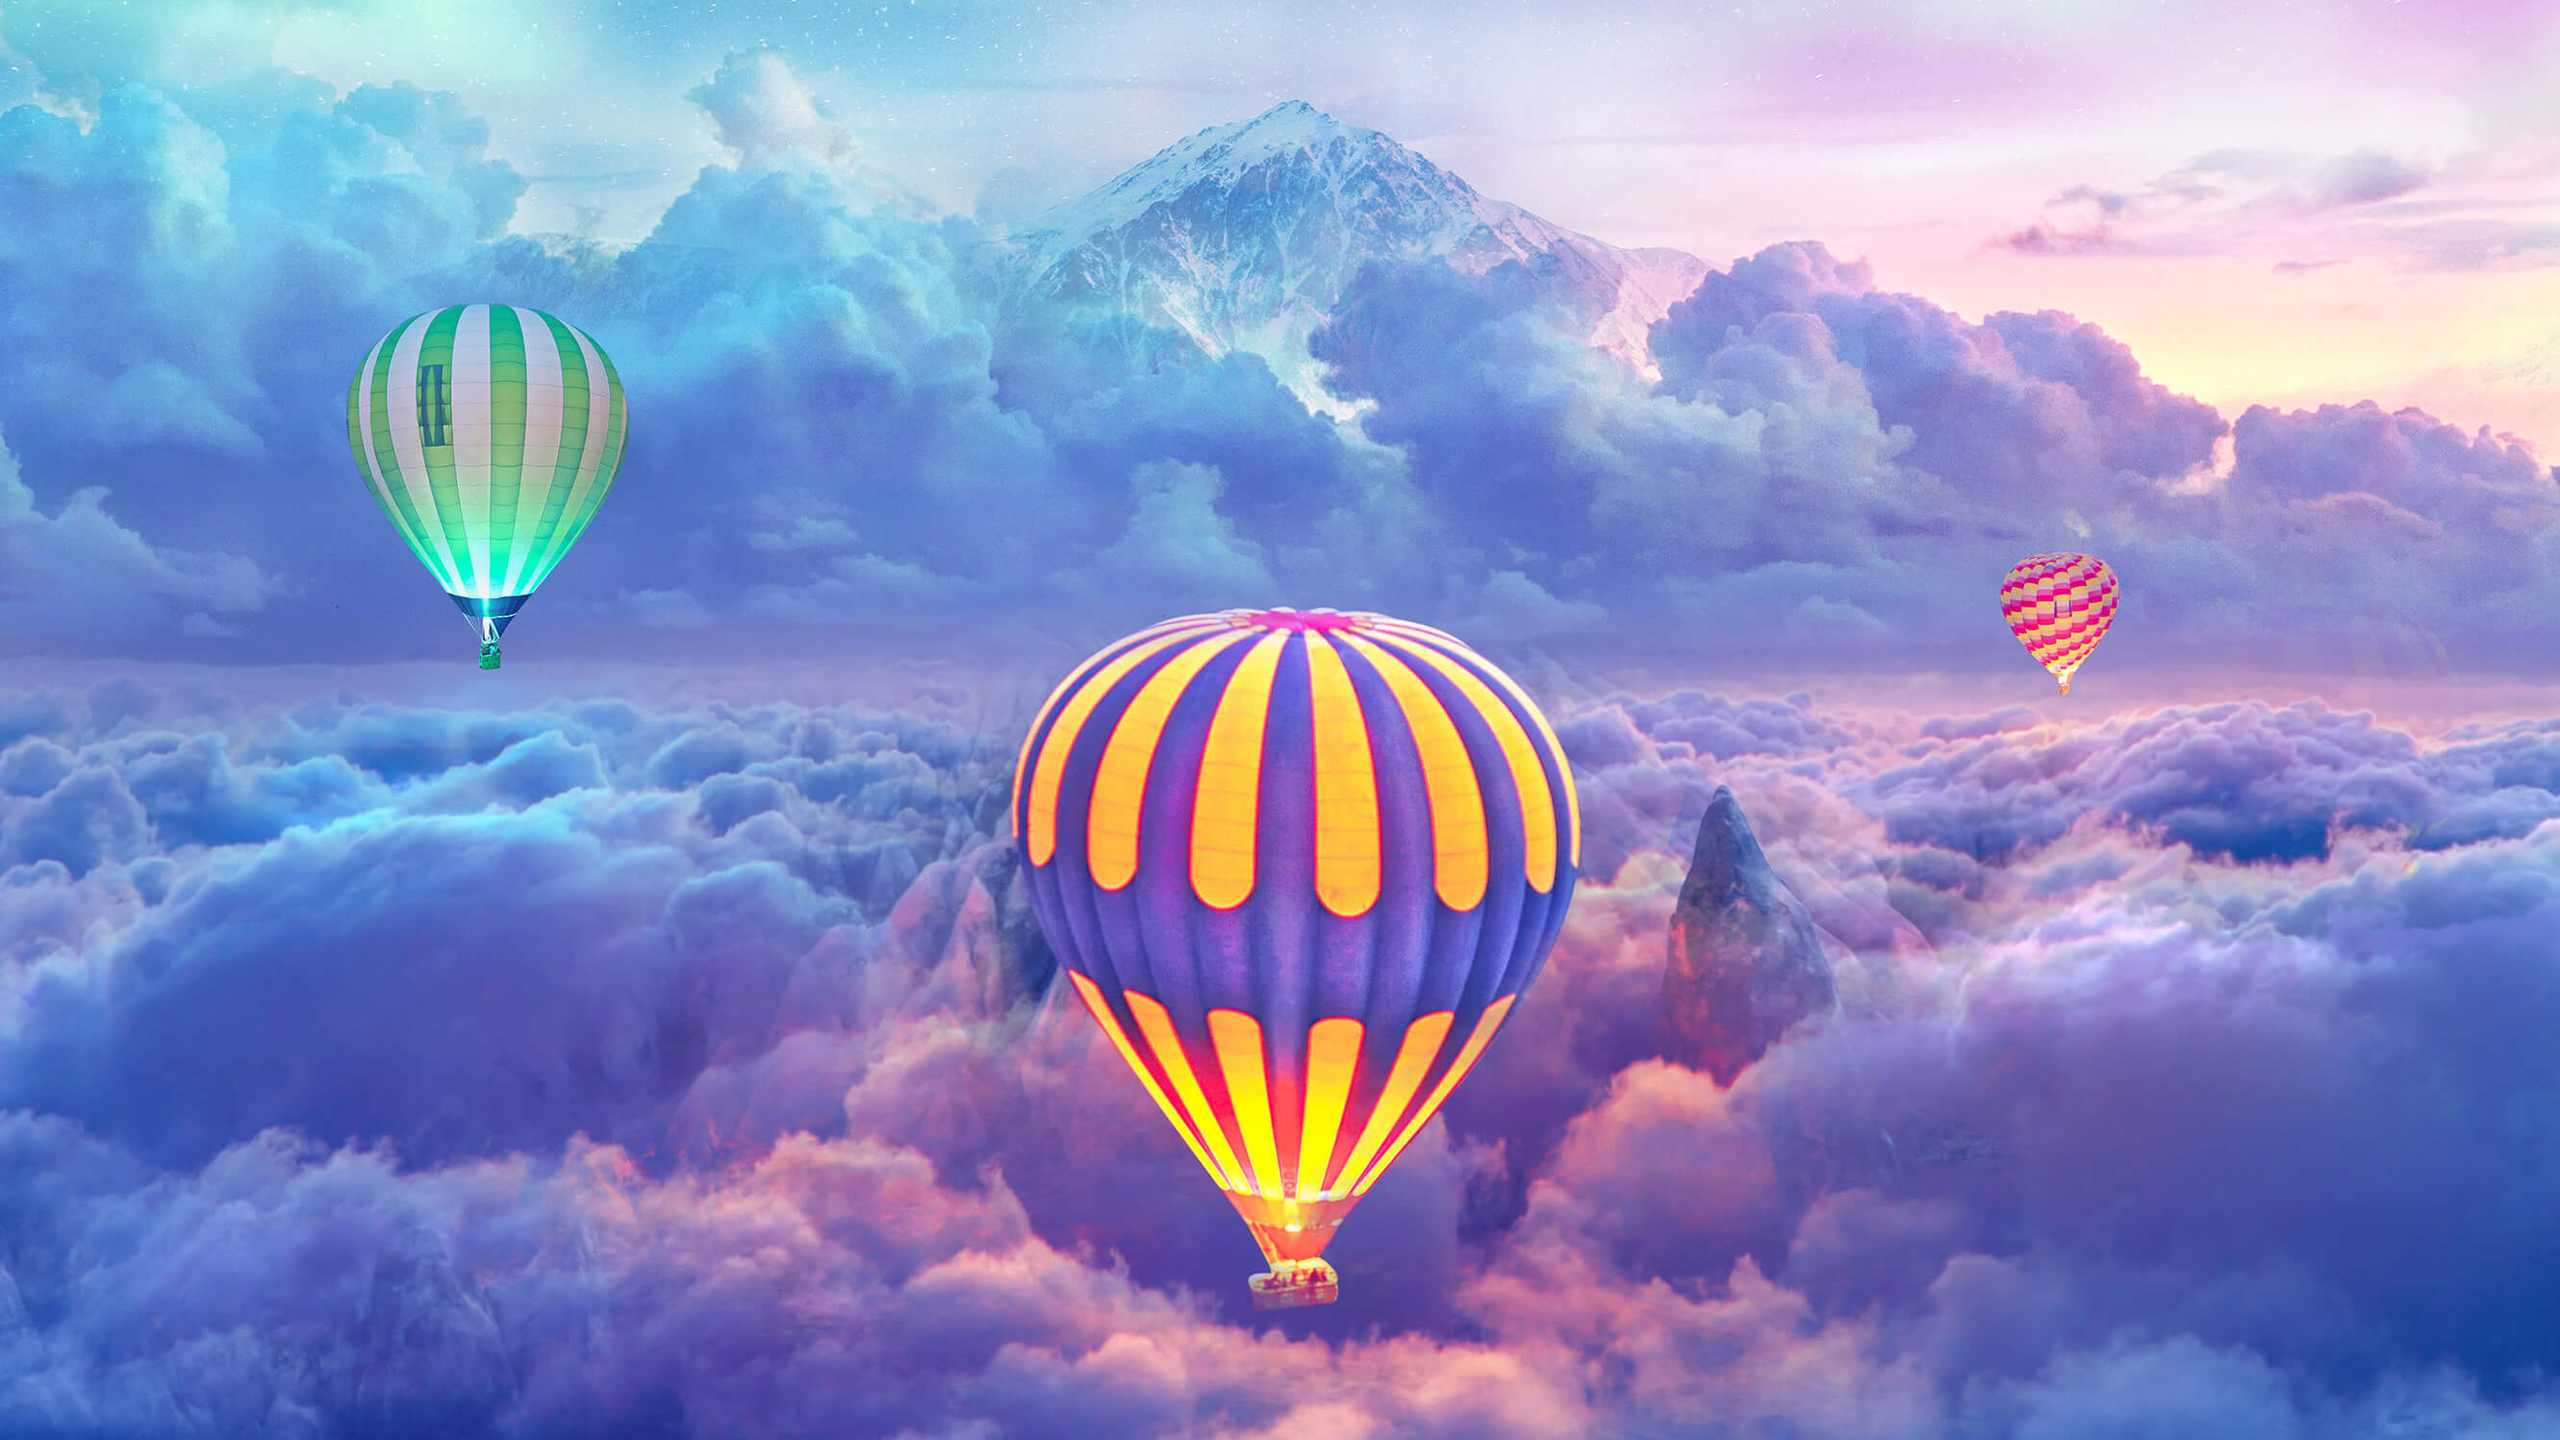 2560x1440 Hot Air Balloons Creative Photography 1440p Resolution